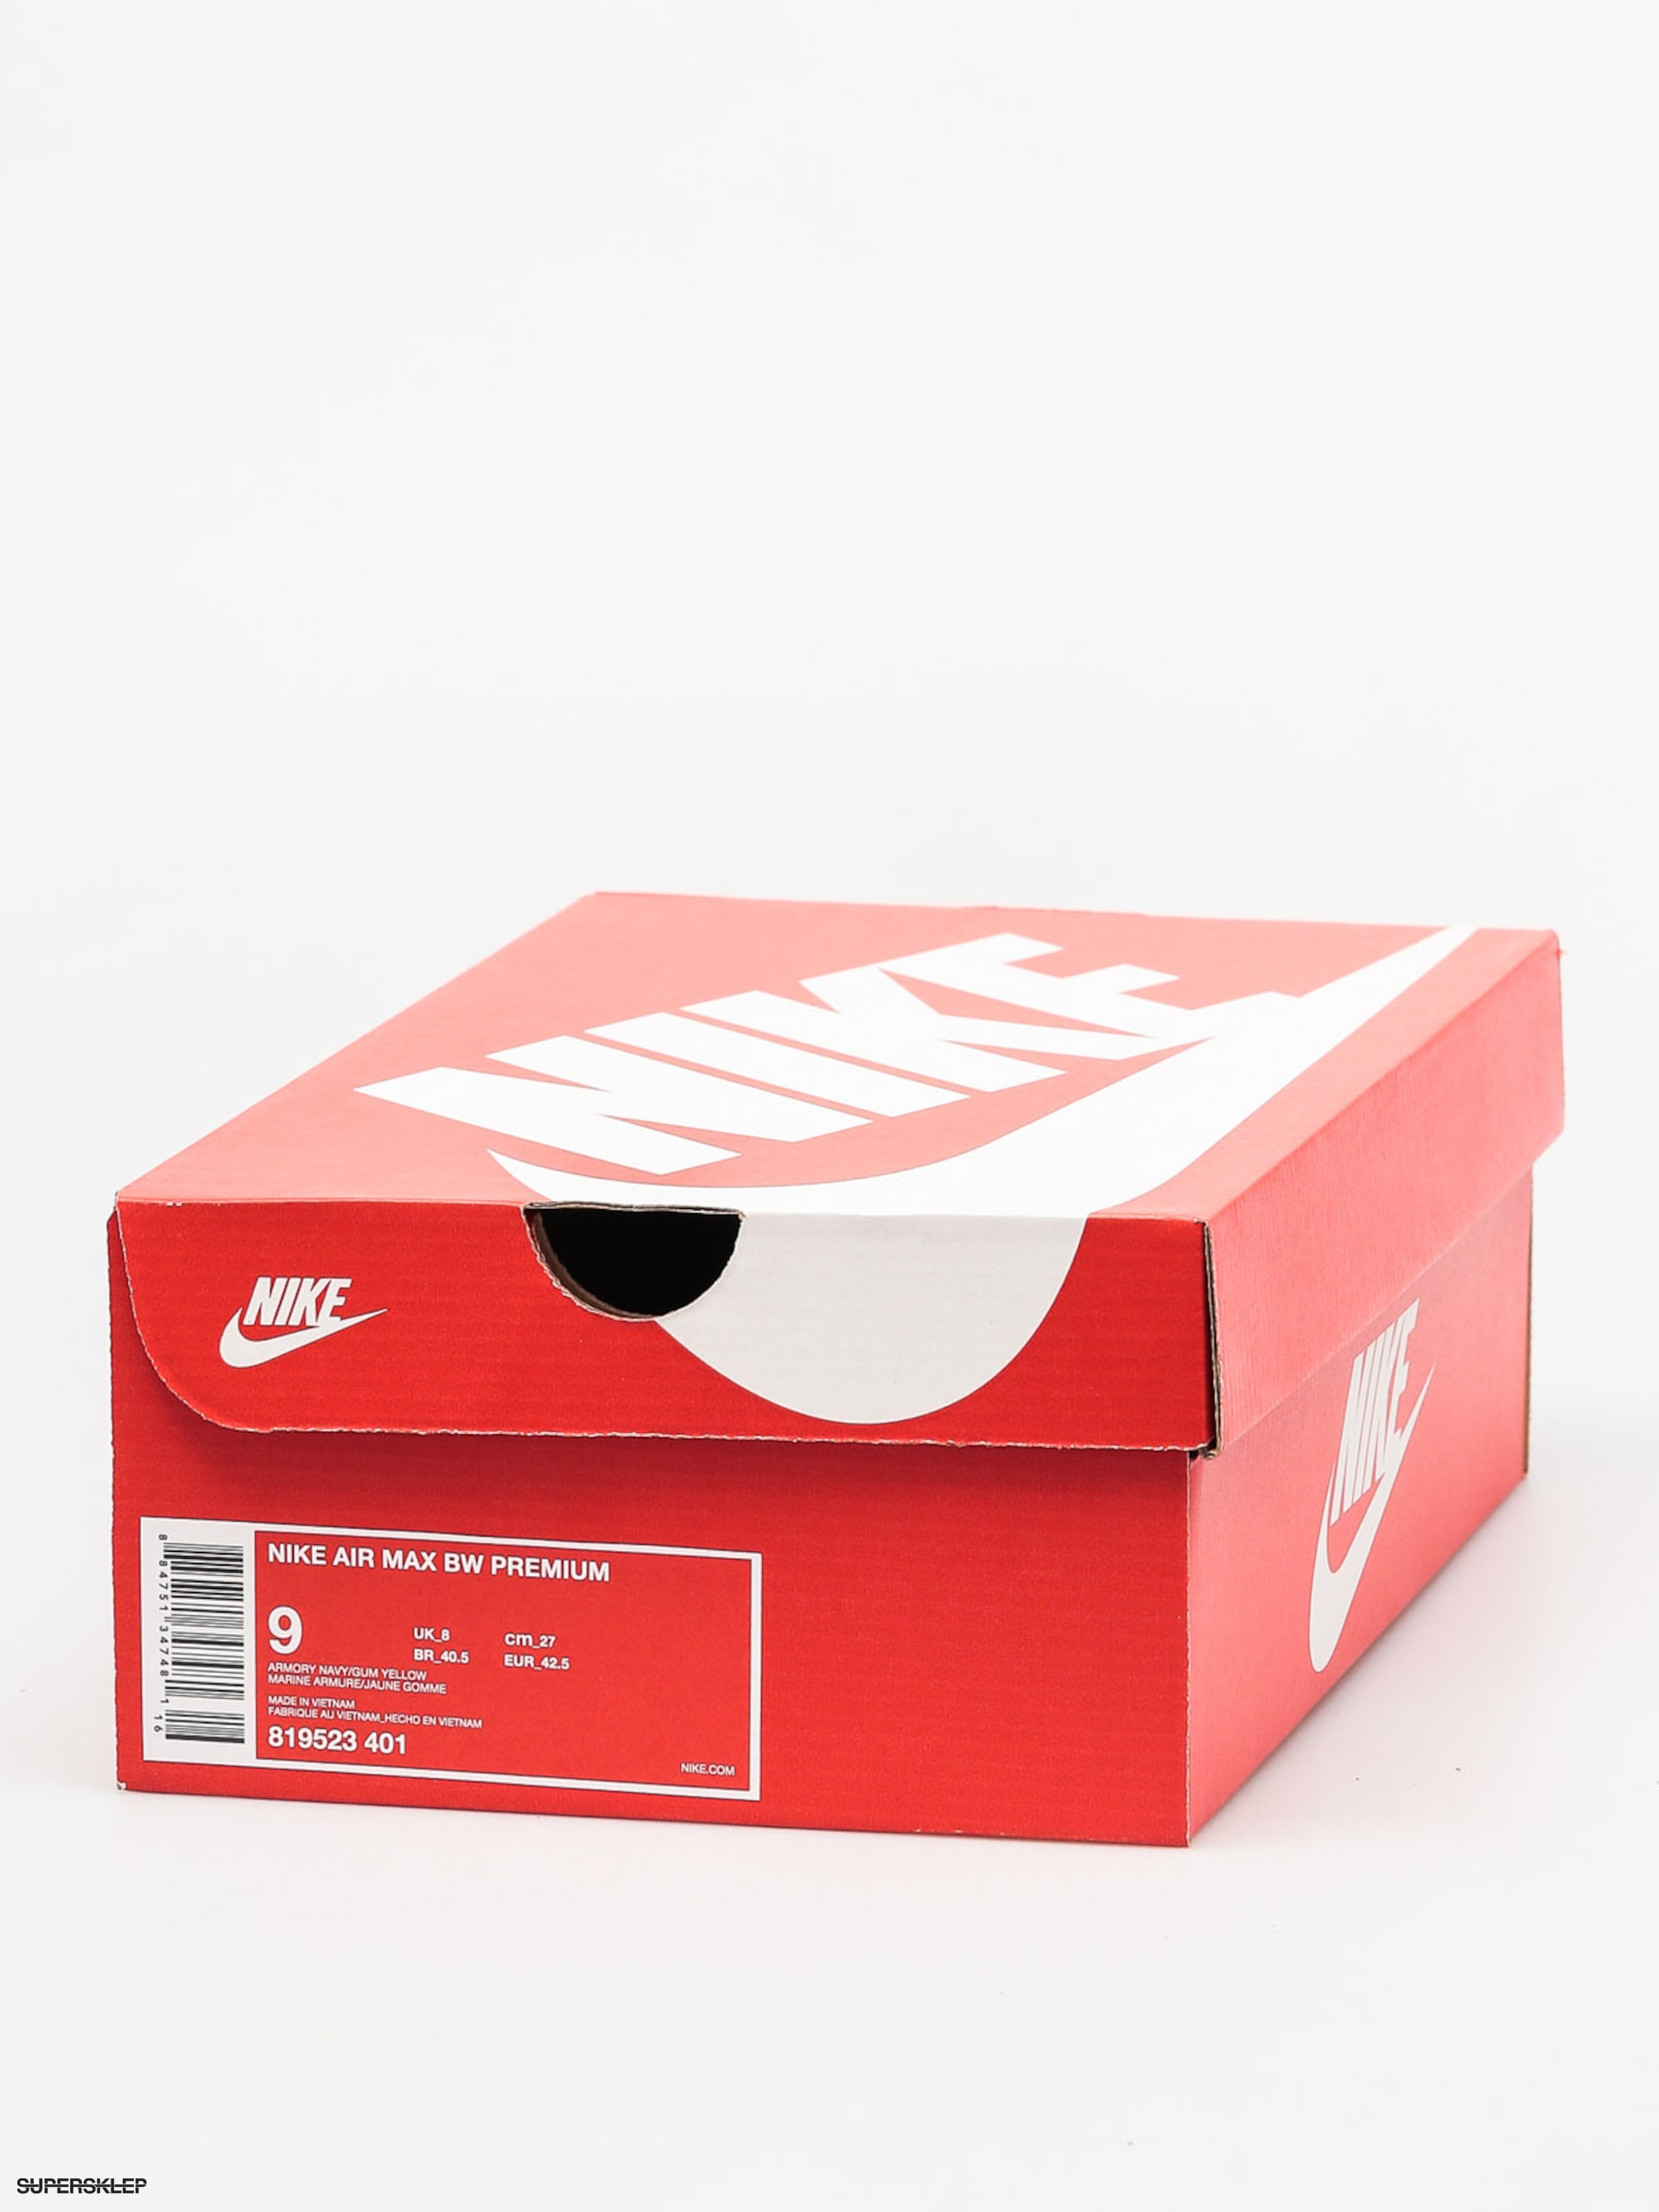 official nike air max bw premium armory navy office 1a340 224f5